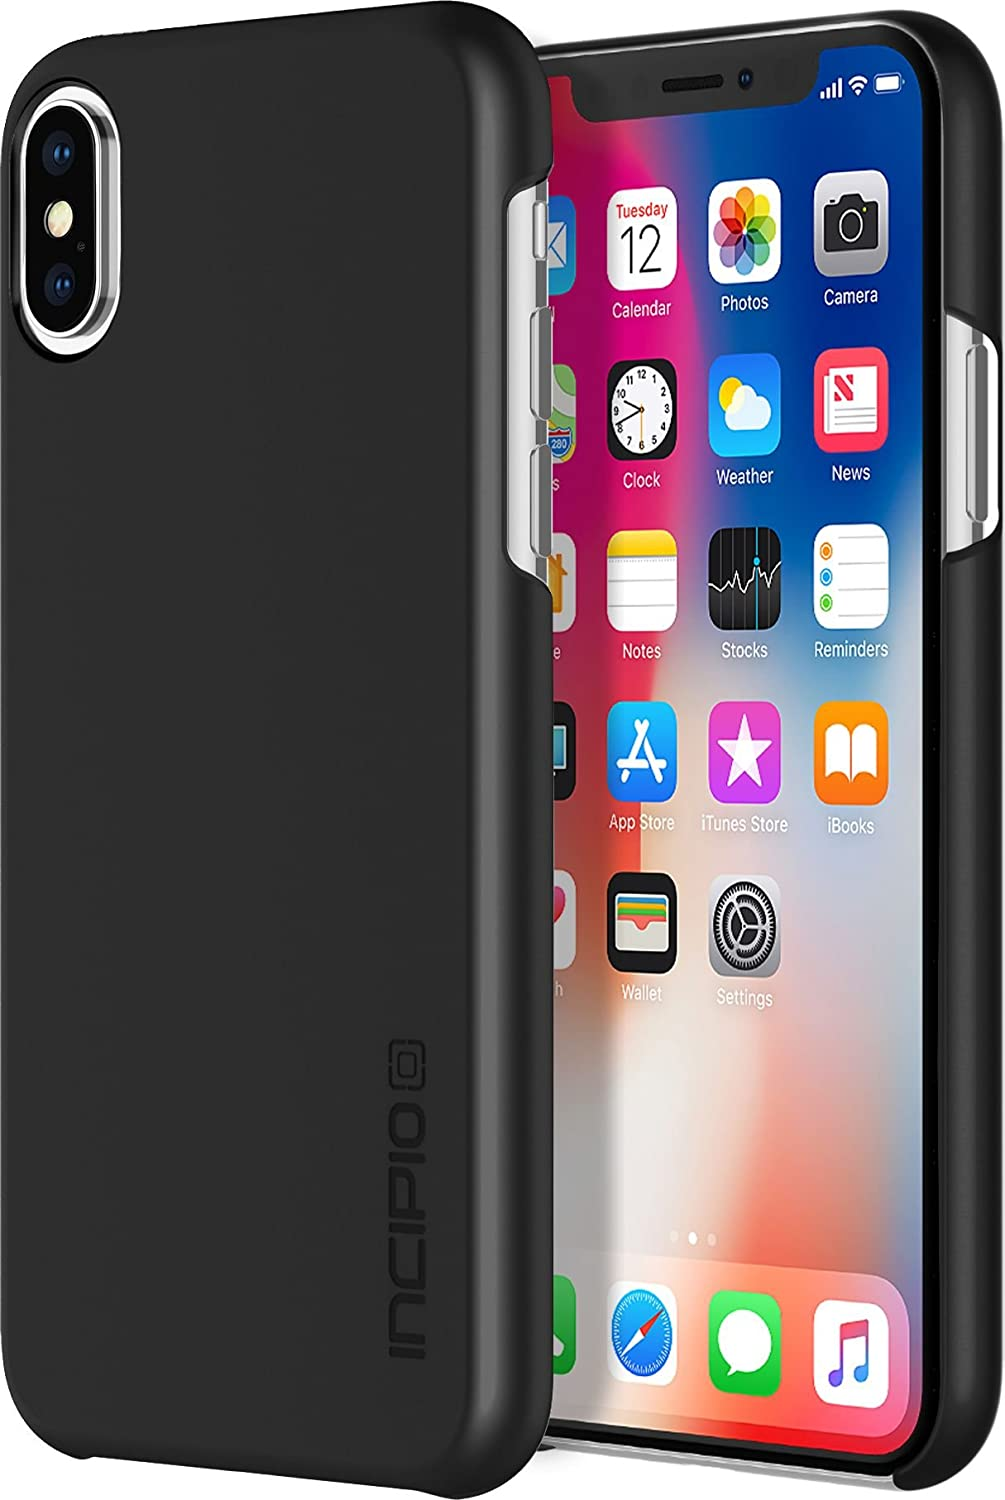 Incipio Feather iPhone X Case with Ultra-Thin Snap-On Design for iPhone X -  Black